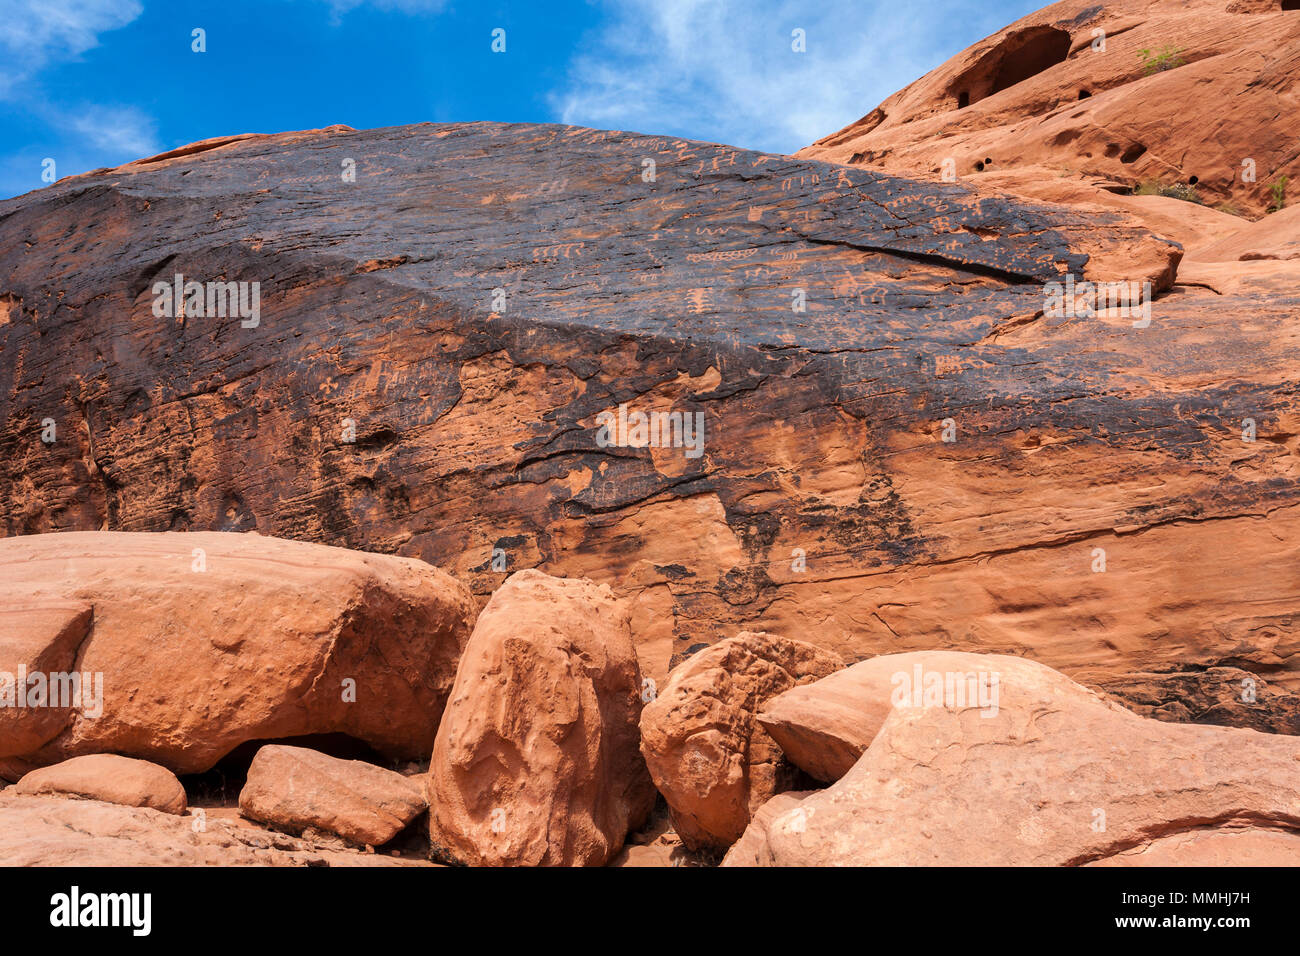 Symbols Etched In Red Aztec Sandstone Rock Formations In The Valley